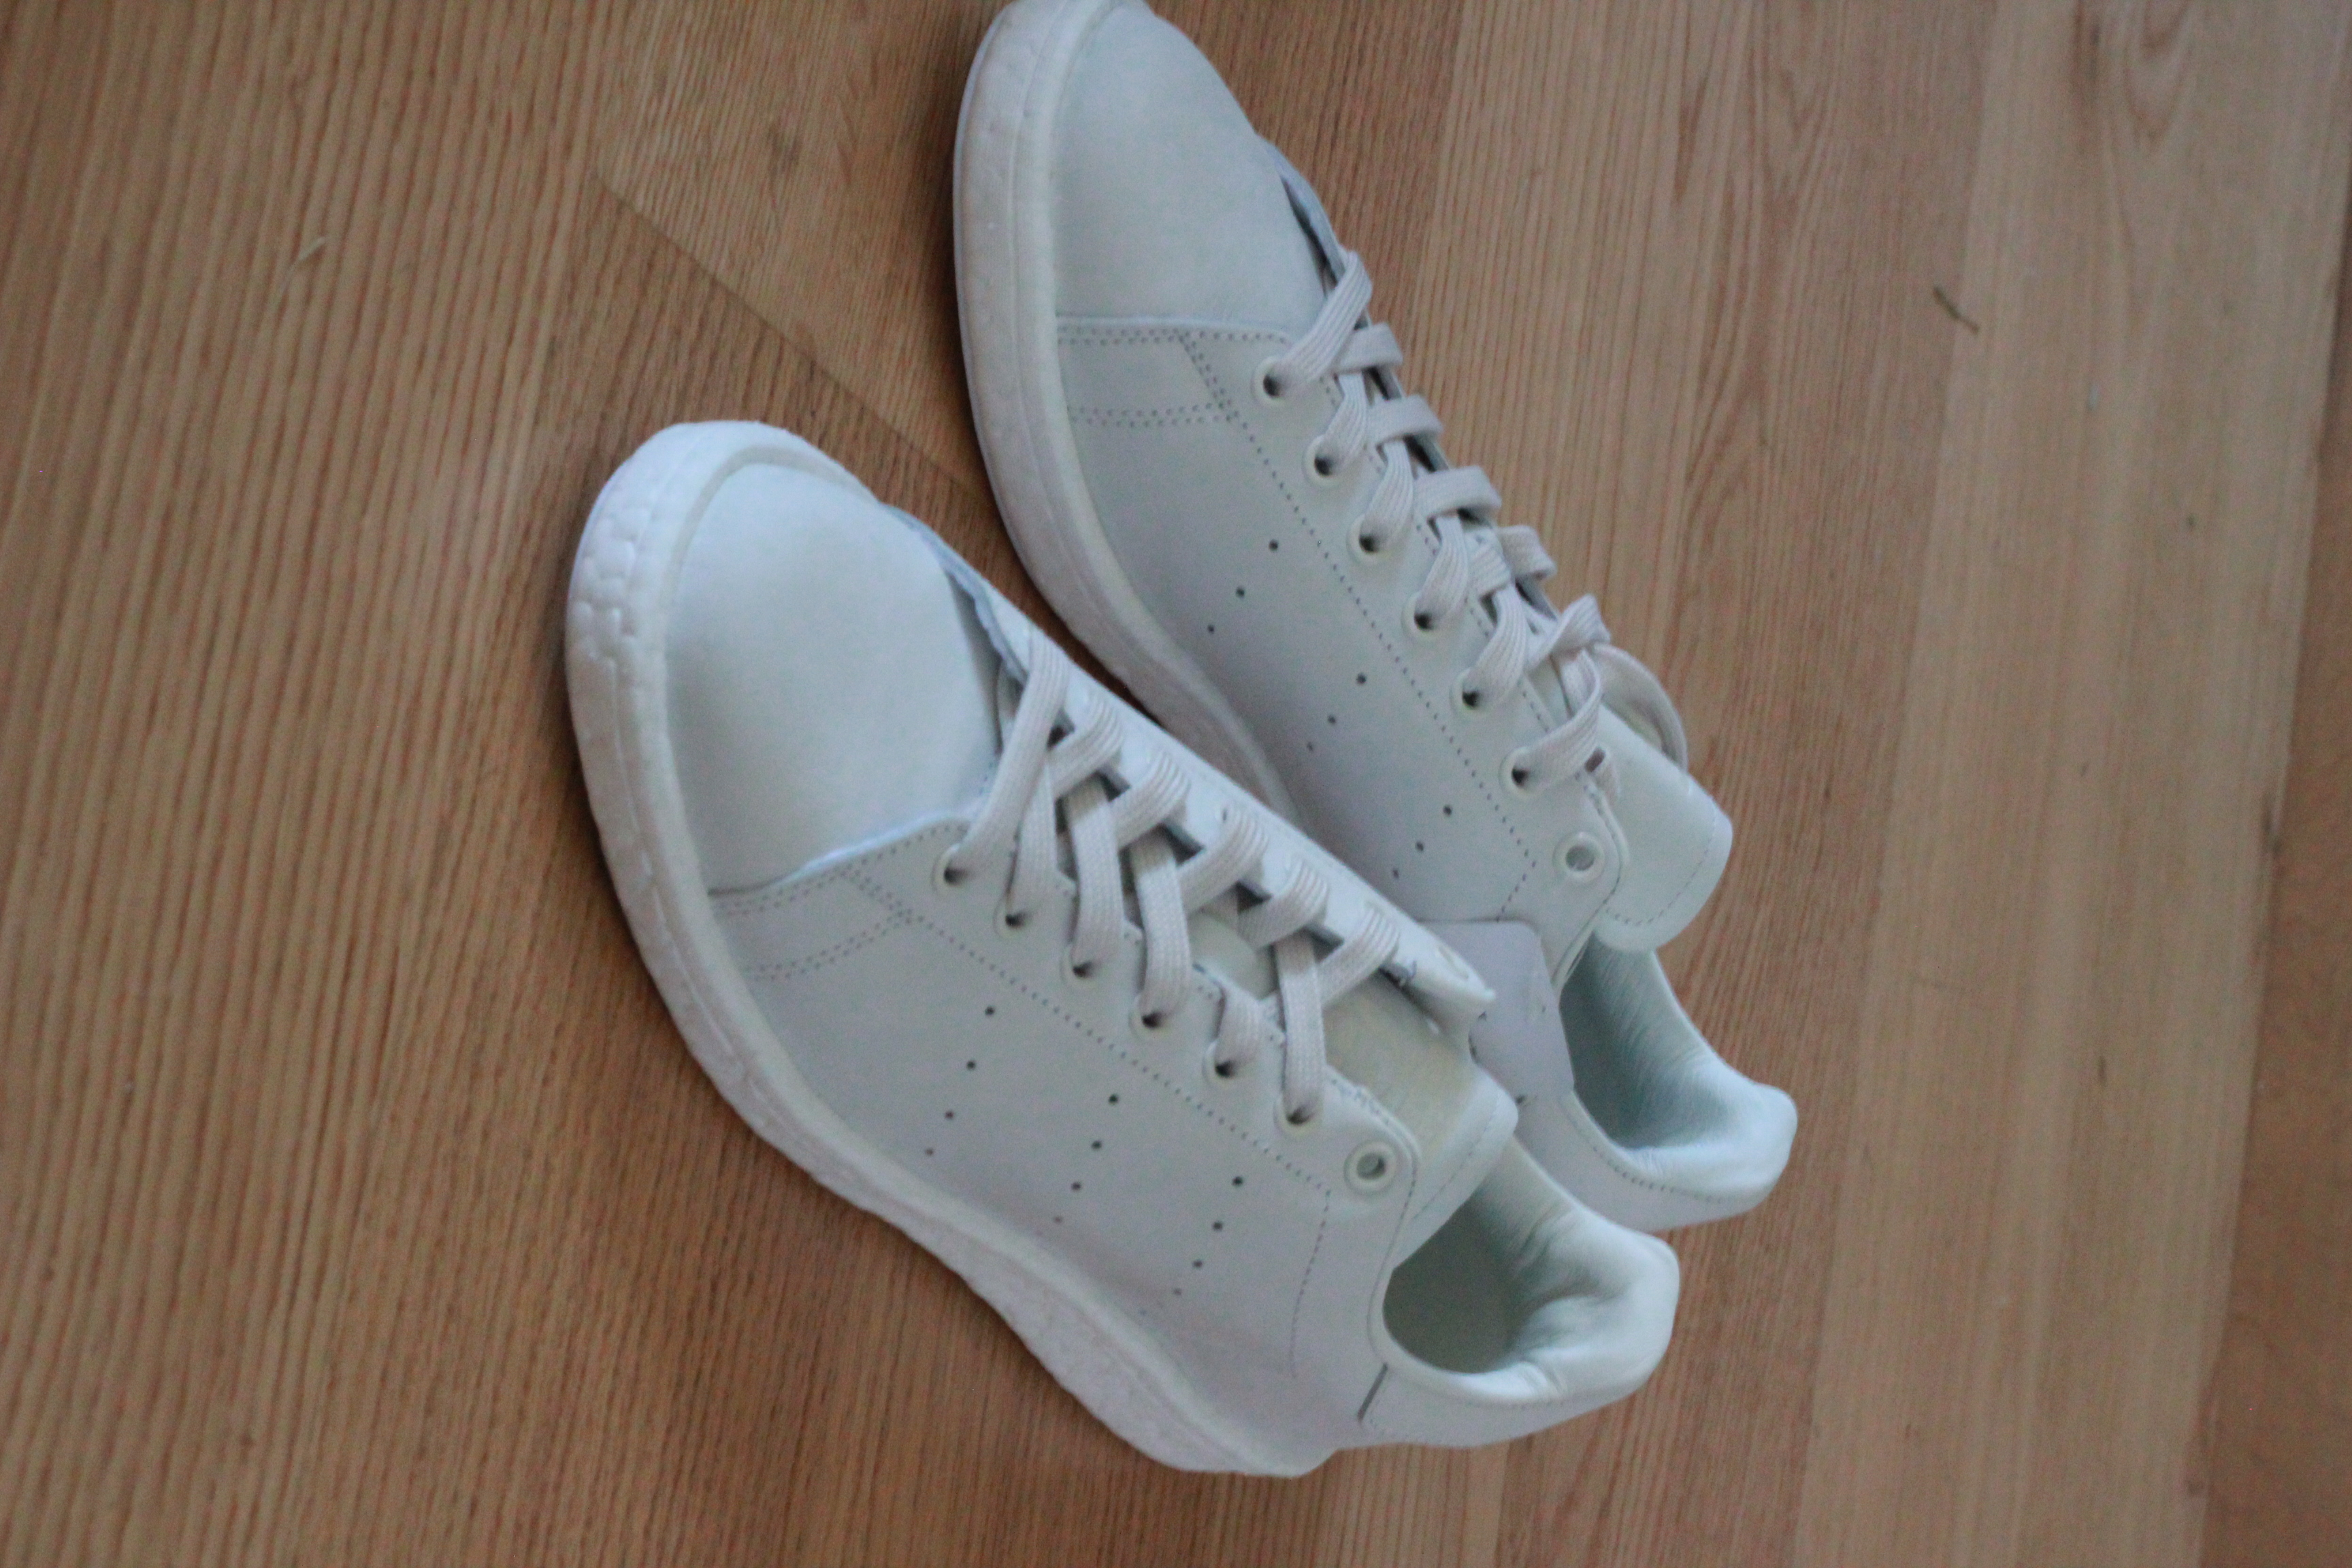 Sneakersnstuff x Adidas Stan Smith Boosts (BY2281) Size US 10 New w Box